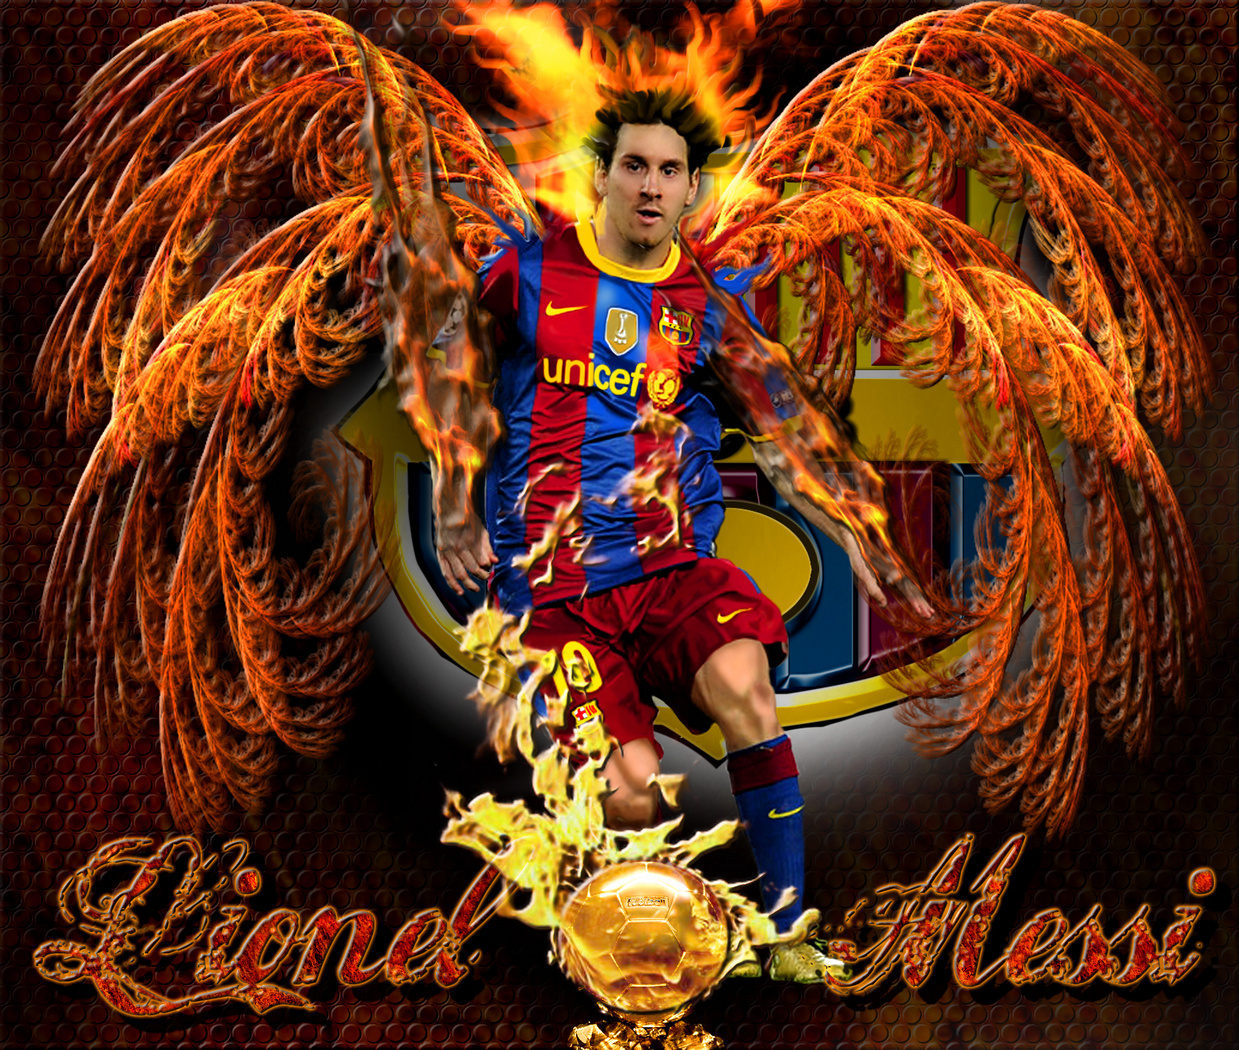 Lionel Messi Fc Barcelona 2013 Hd Wallpapers All About Hd Wallpapers